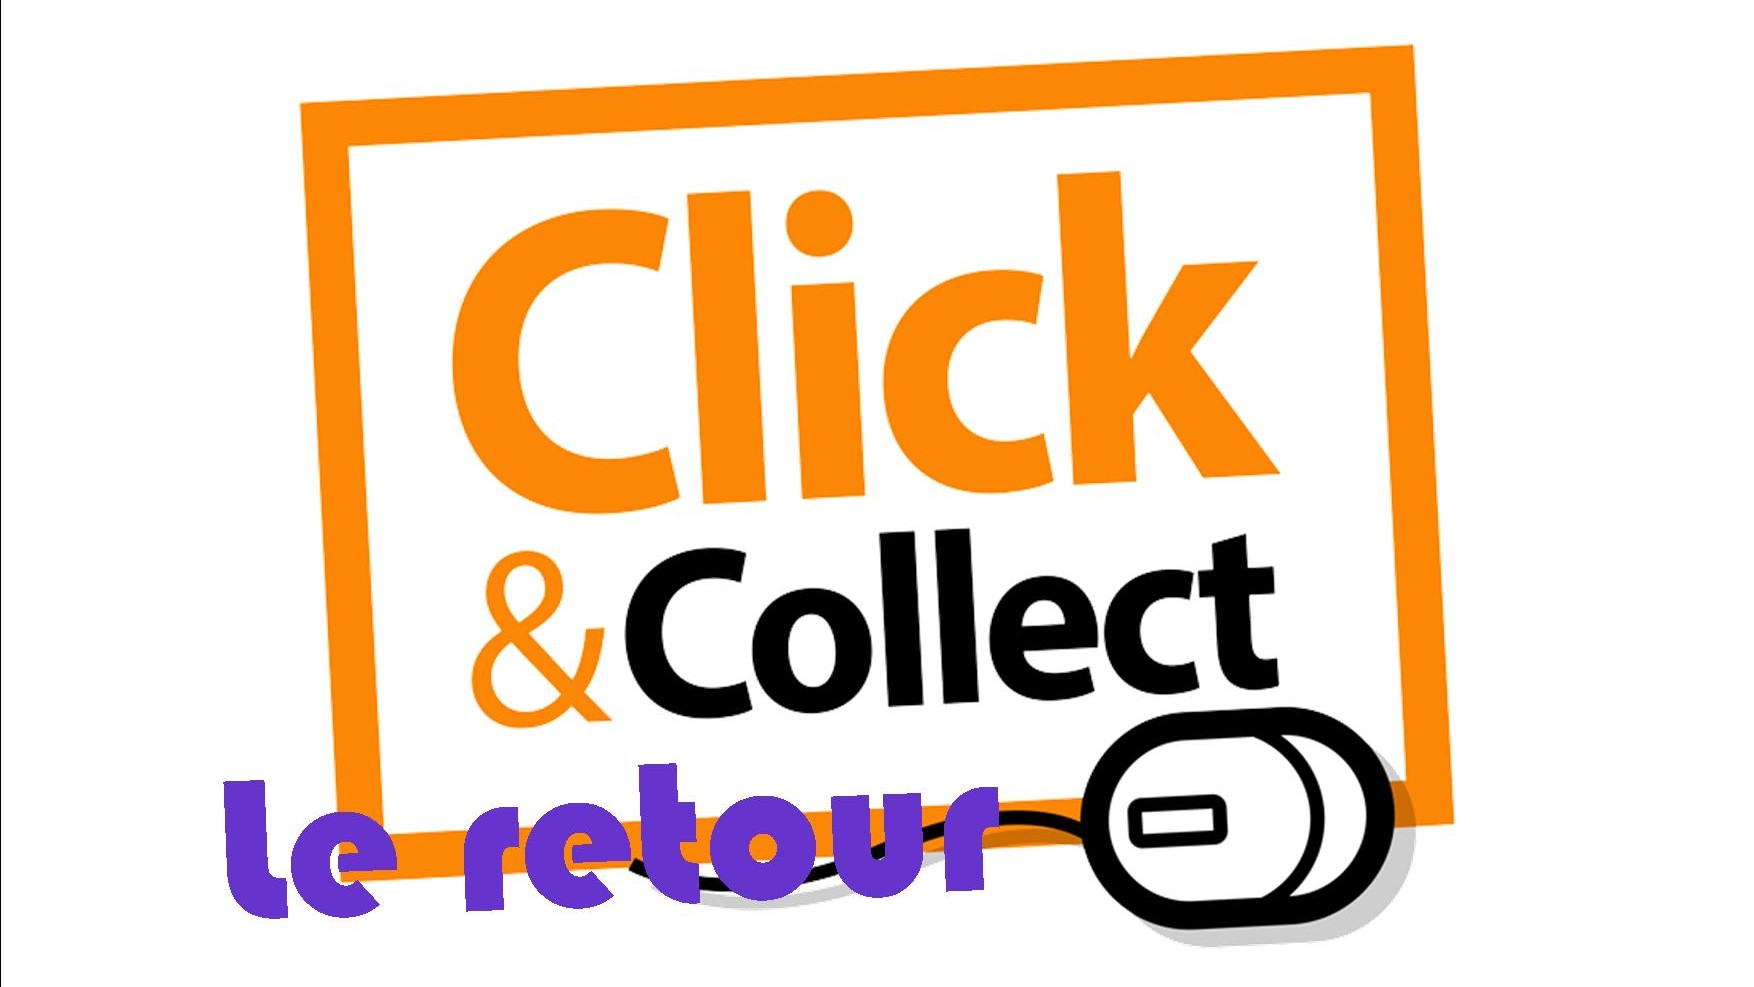 Cick-and-collect-retour-16-9